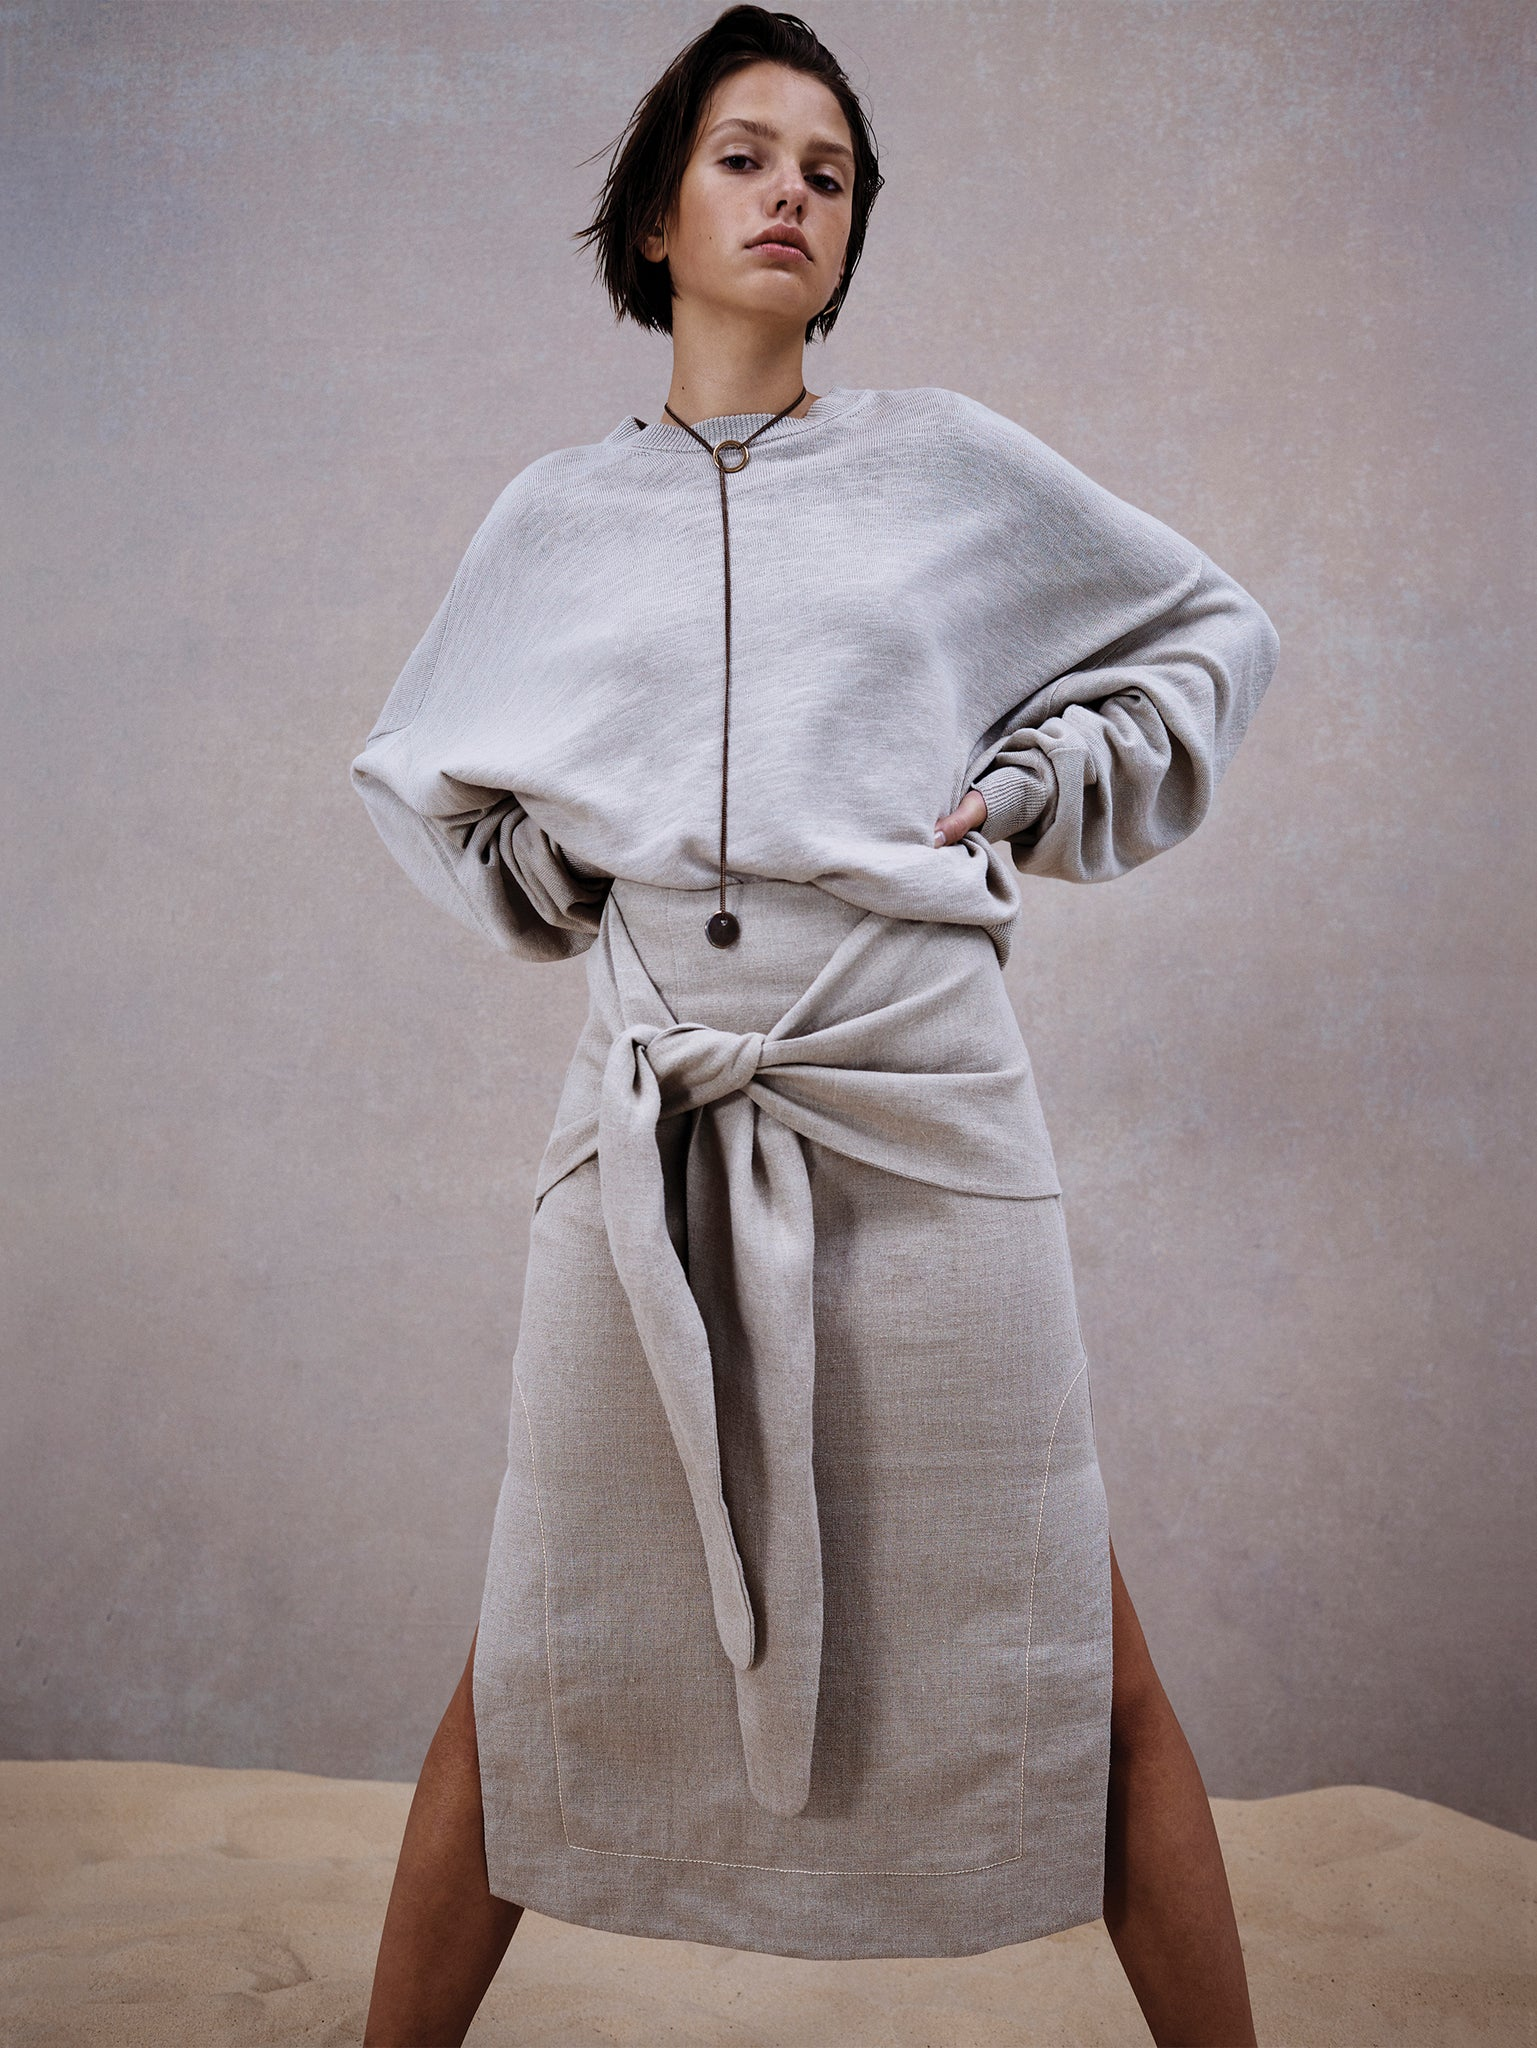 resort 20 capsule look 12